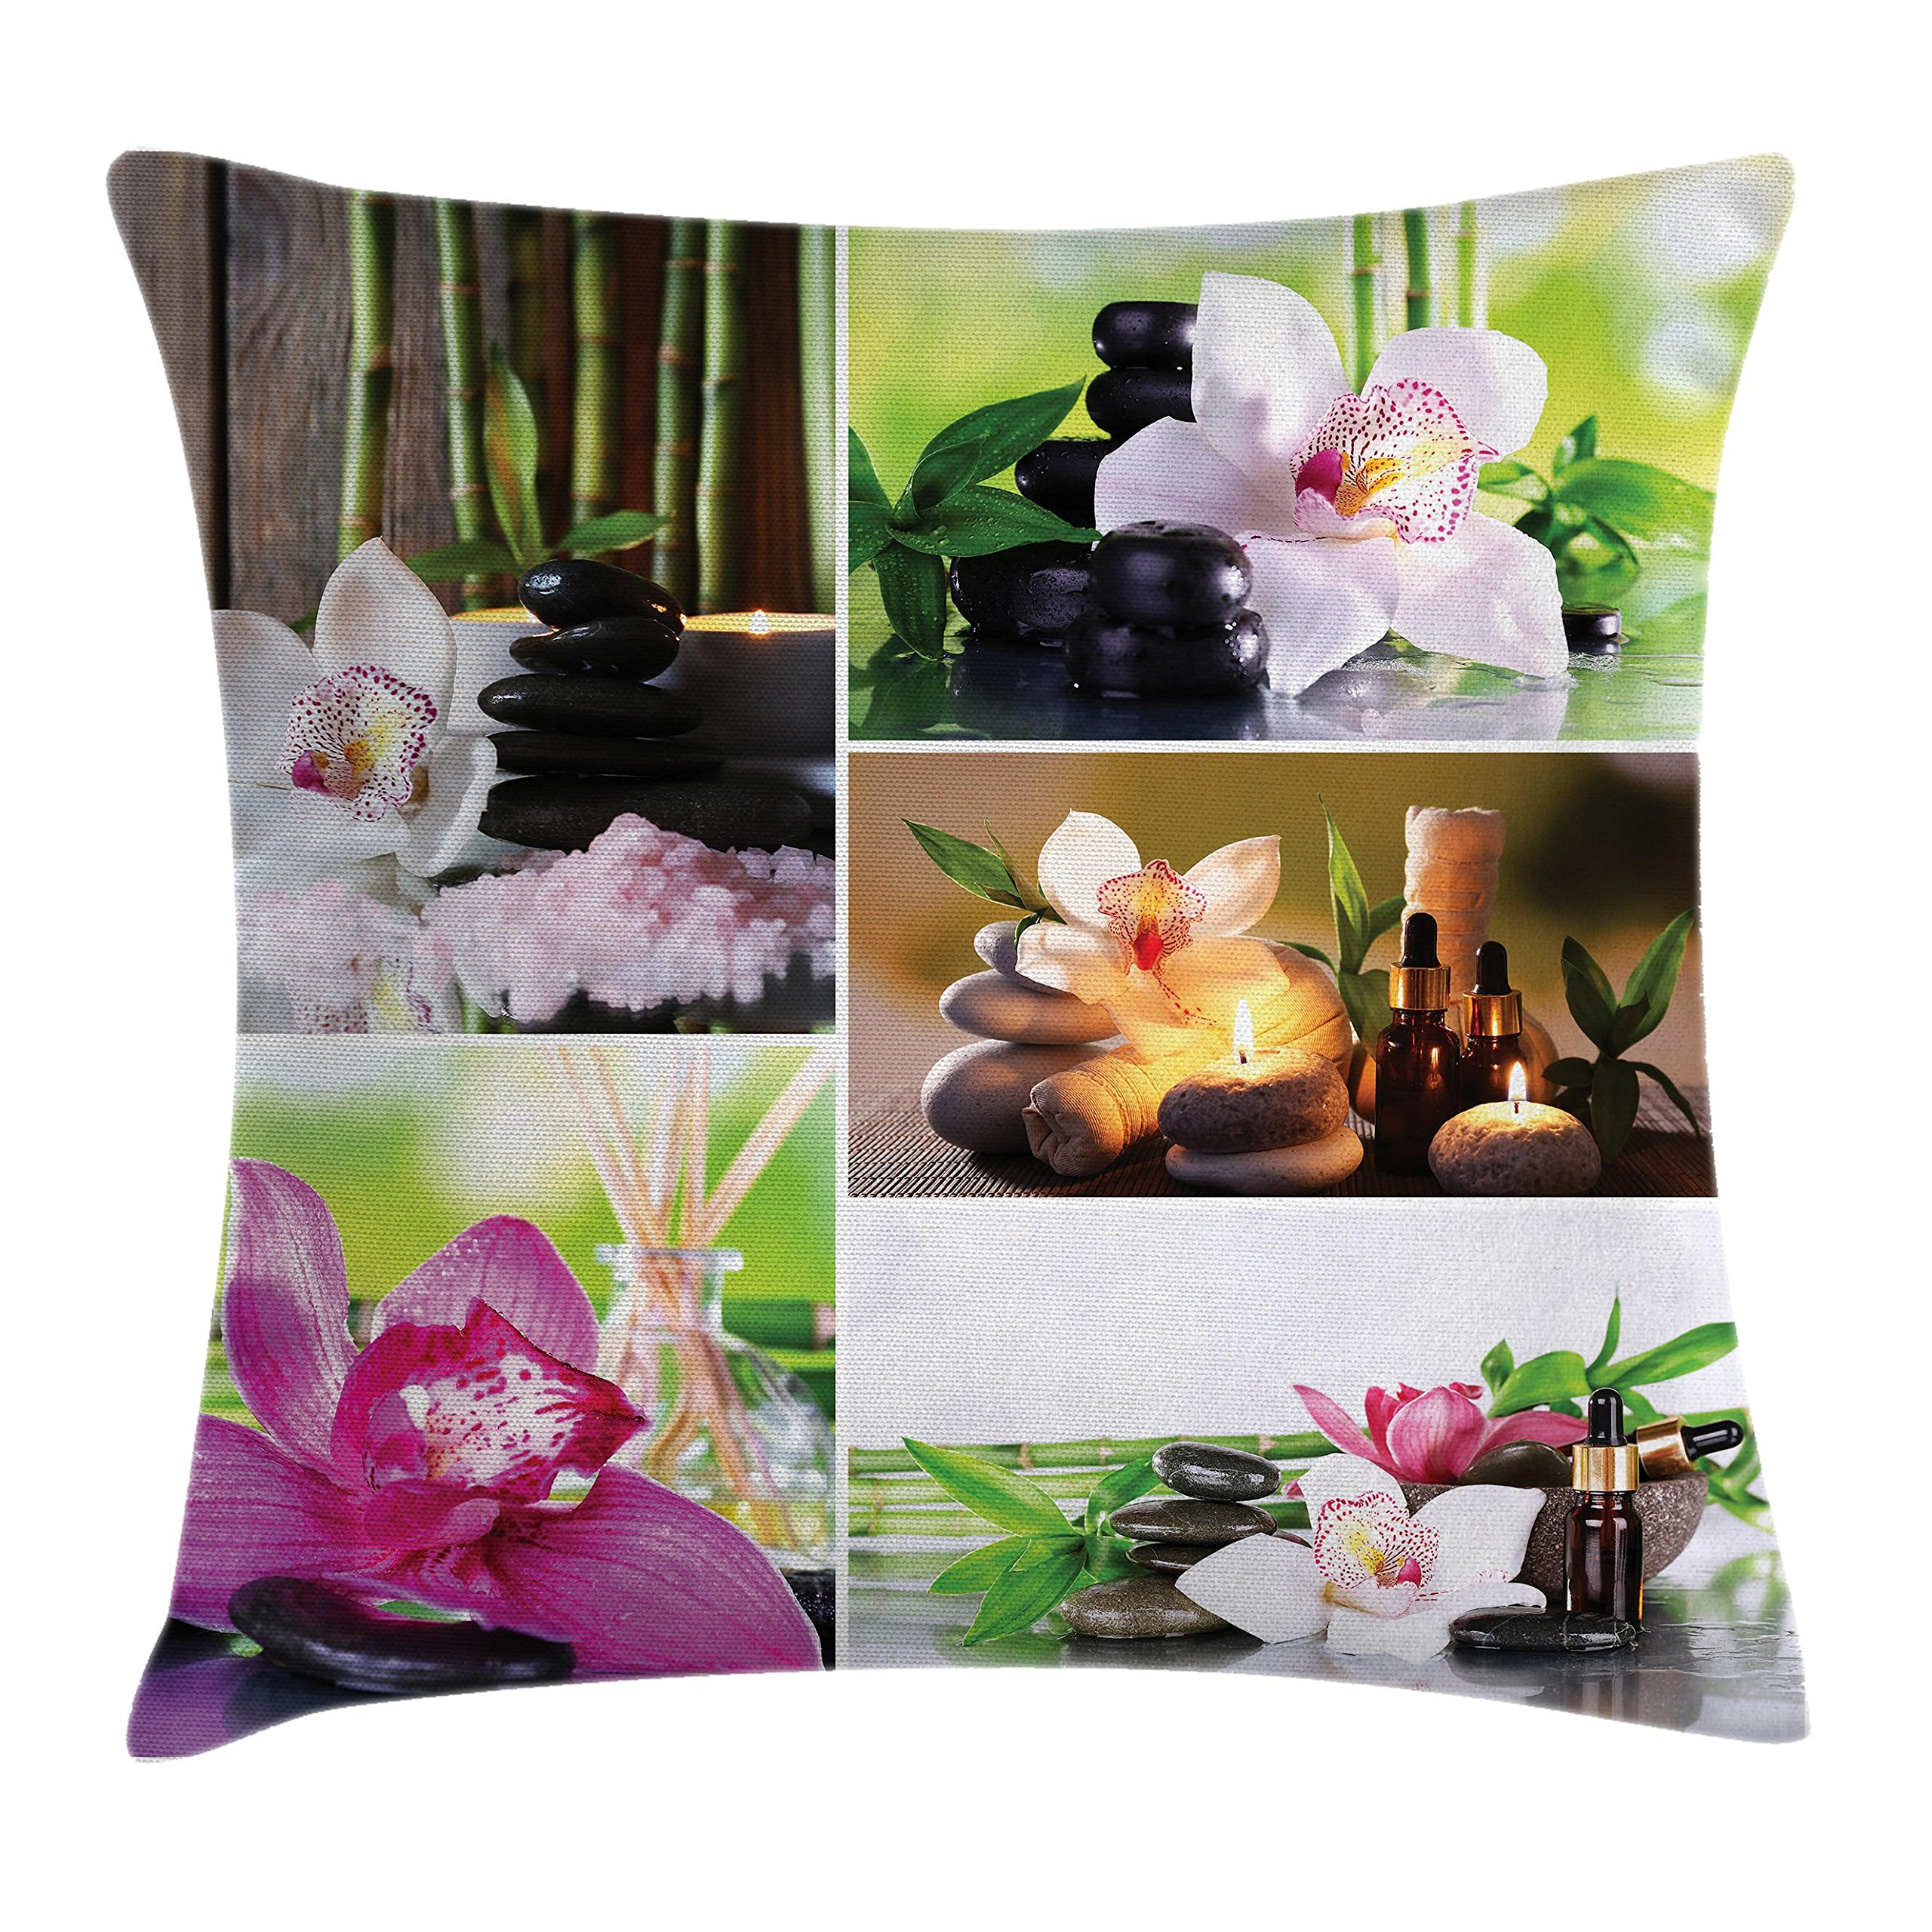 Ambesonne Spa Throw Pillow Cushion Cover, Spa Day Collage with Orchids Stone Pebbles Natural Herbal Oils Body and Mind Treatment, Decorative Square Accent Pillow Case, 18 X 18 inches, Multicolor